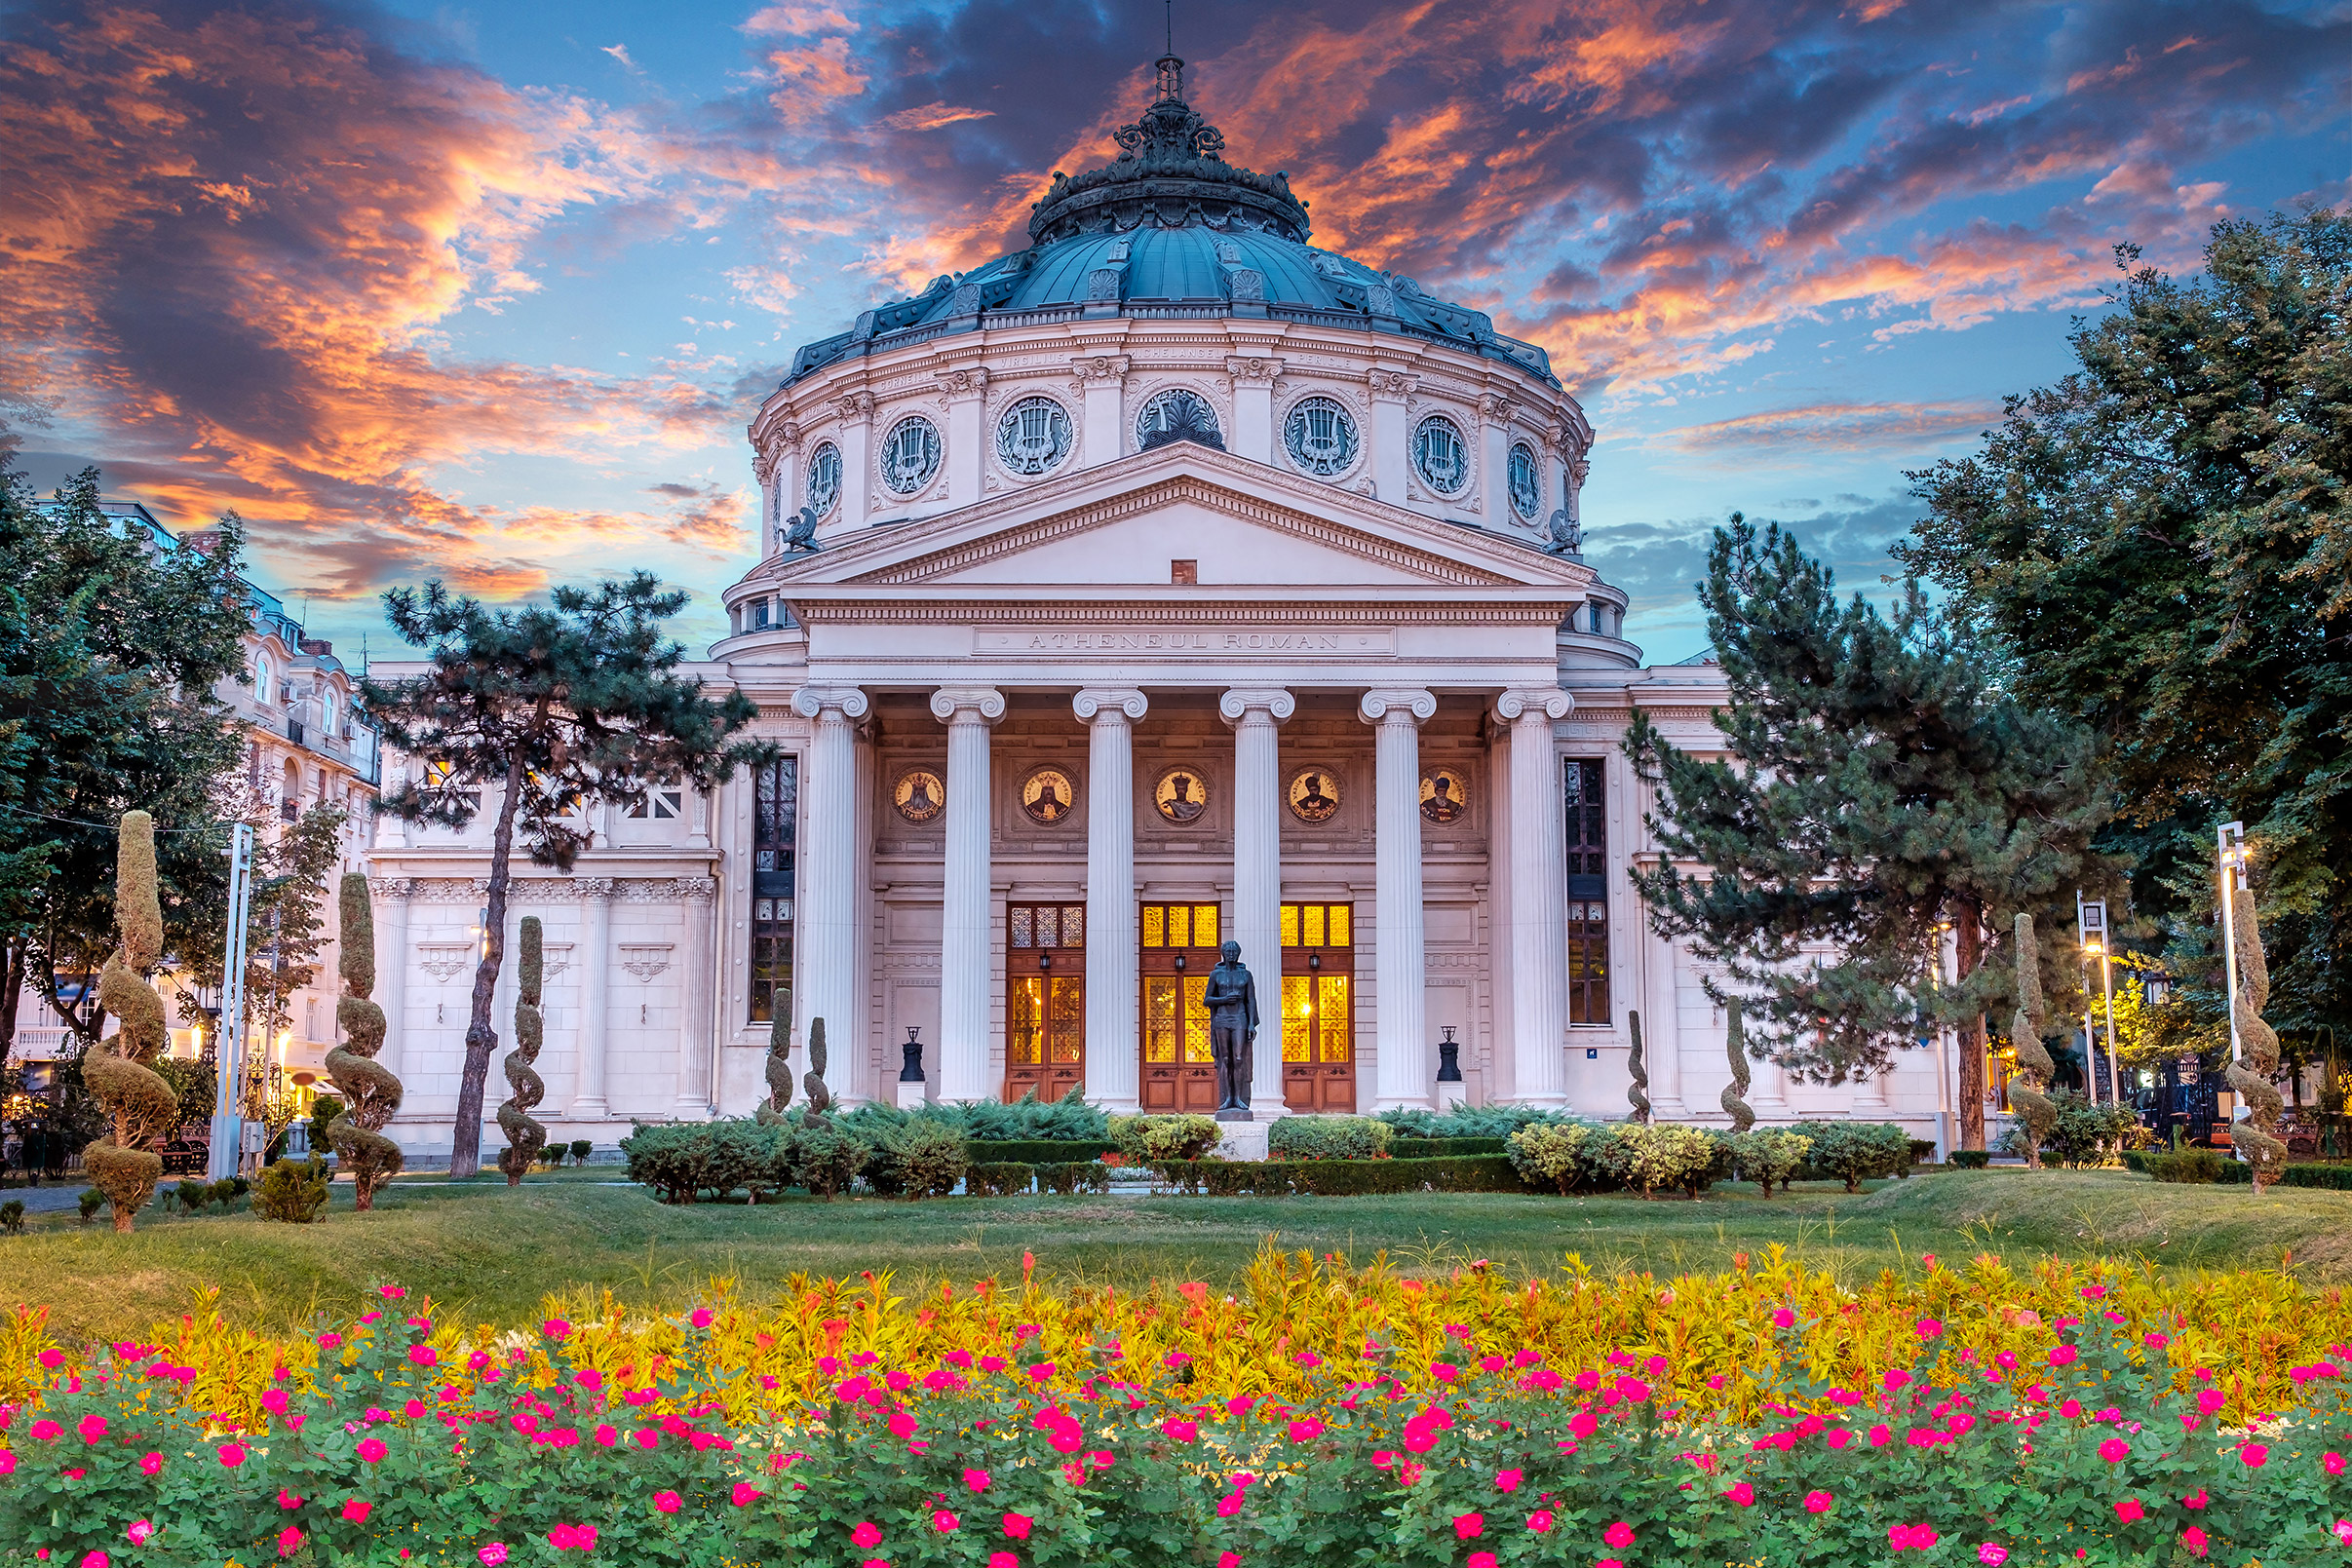 Romania Bucharest Romanian Athenaeum